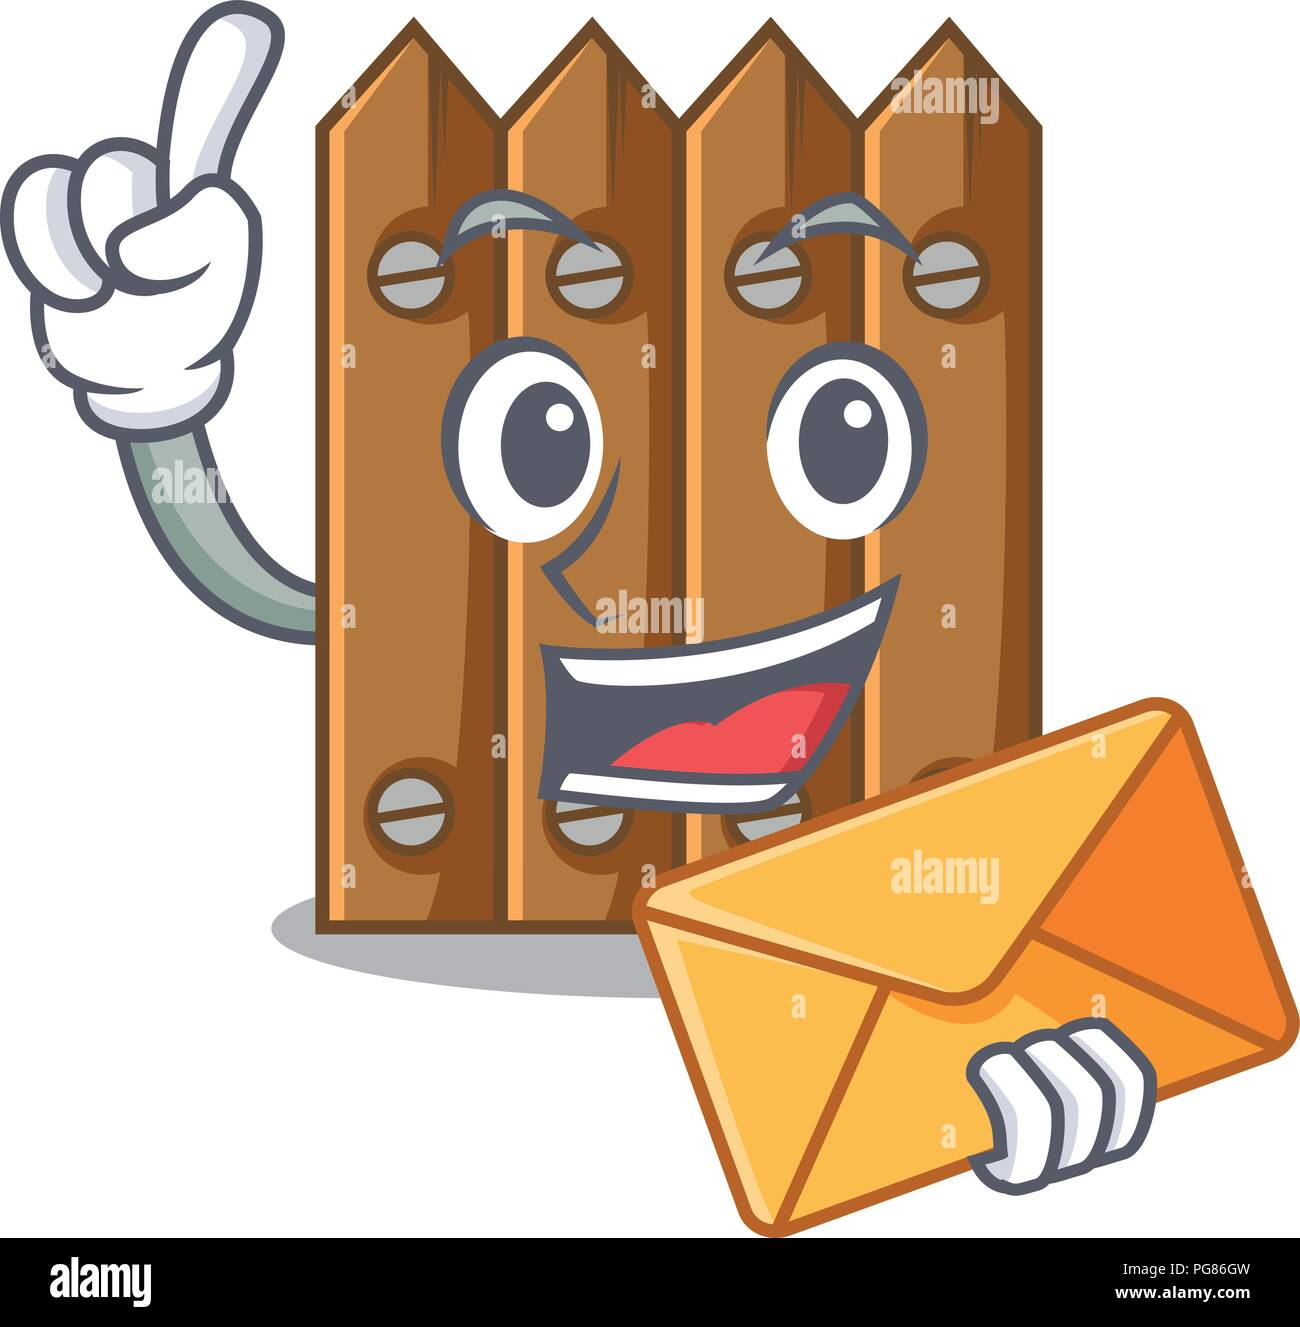 With envelope character close up on wooden fence door - Stock Vector